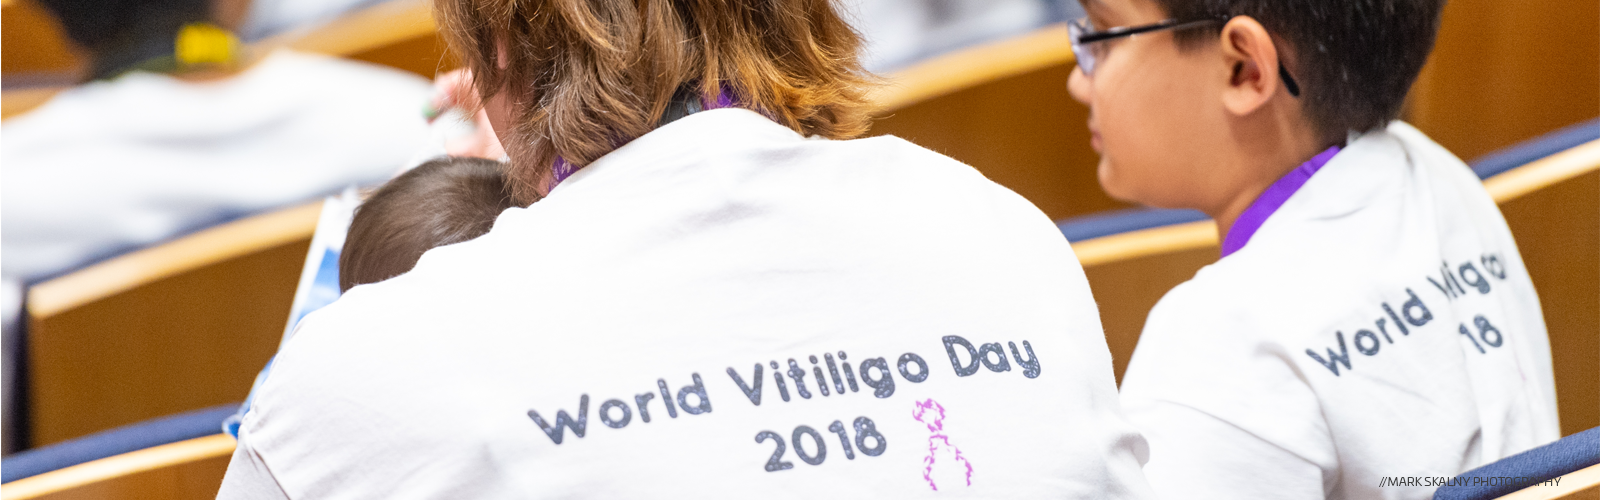 World Vitiligo Day 2018 Conference